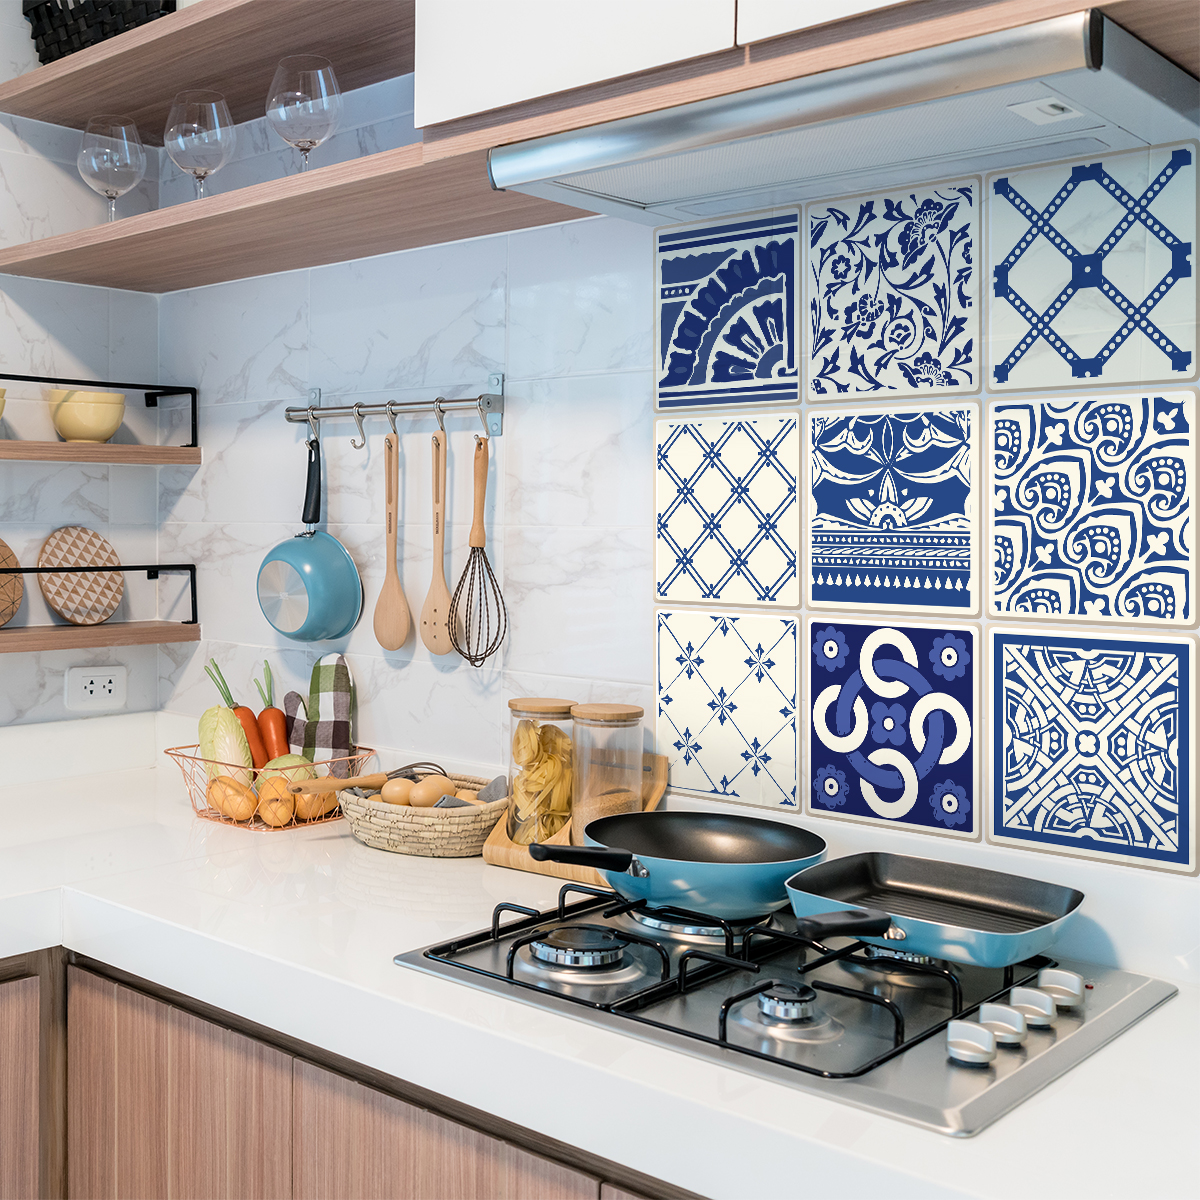 9 stickers carrelages azulejos bartolomeo cuisine carrelages ambiance sticker - Stickers cuisine carrelage ...